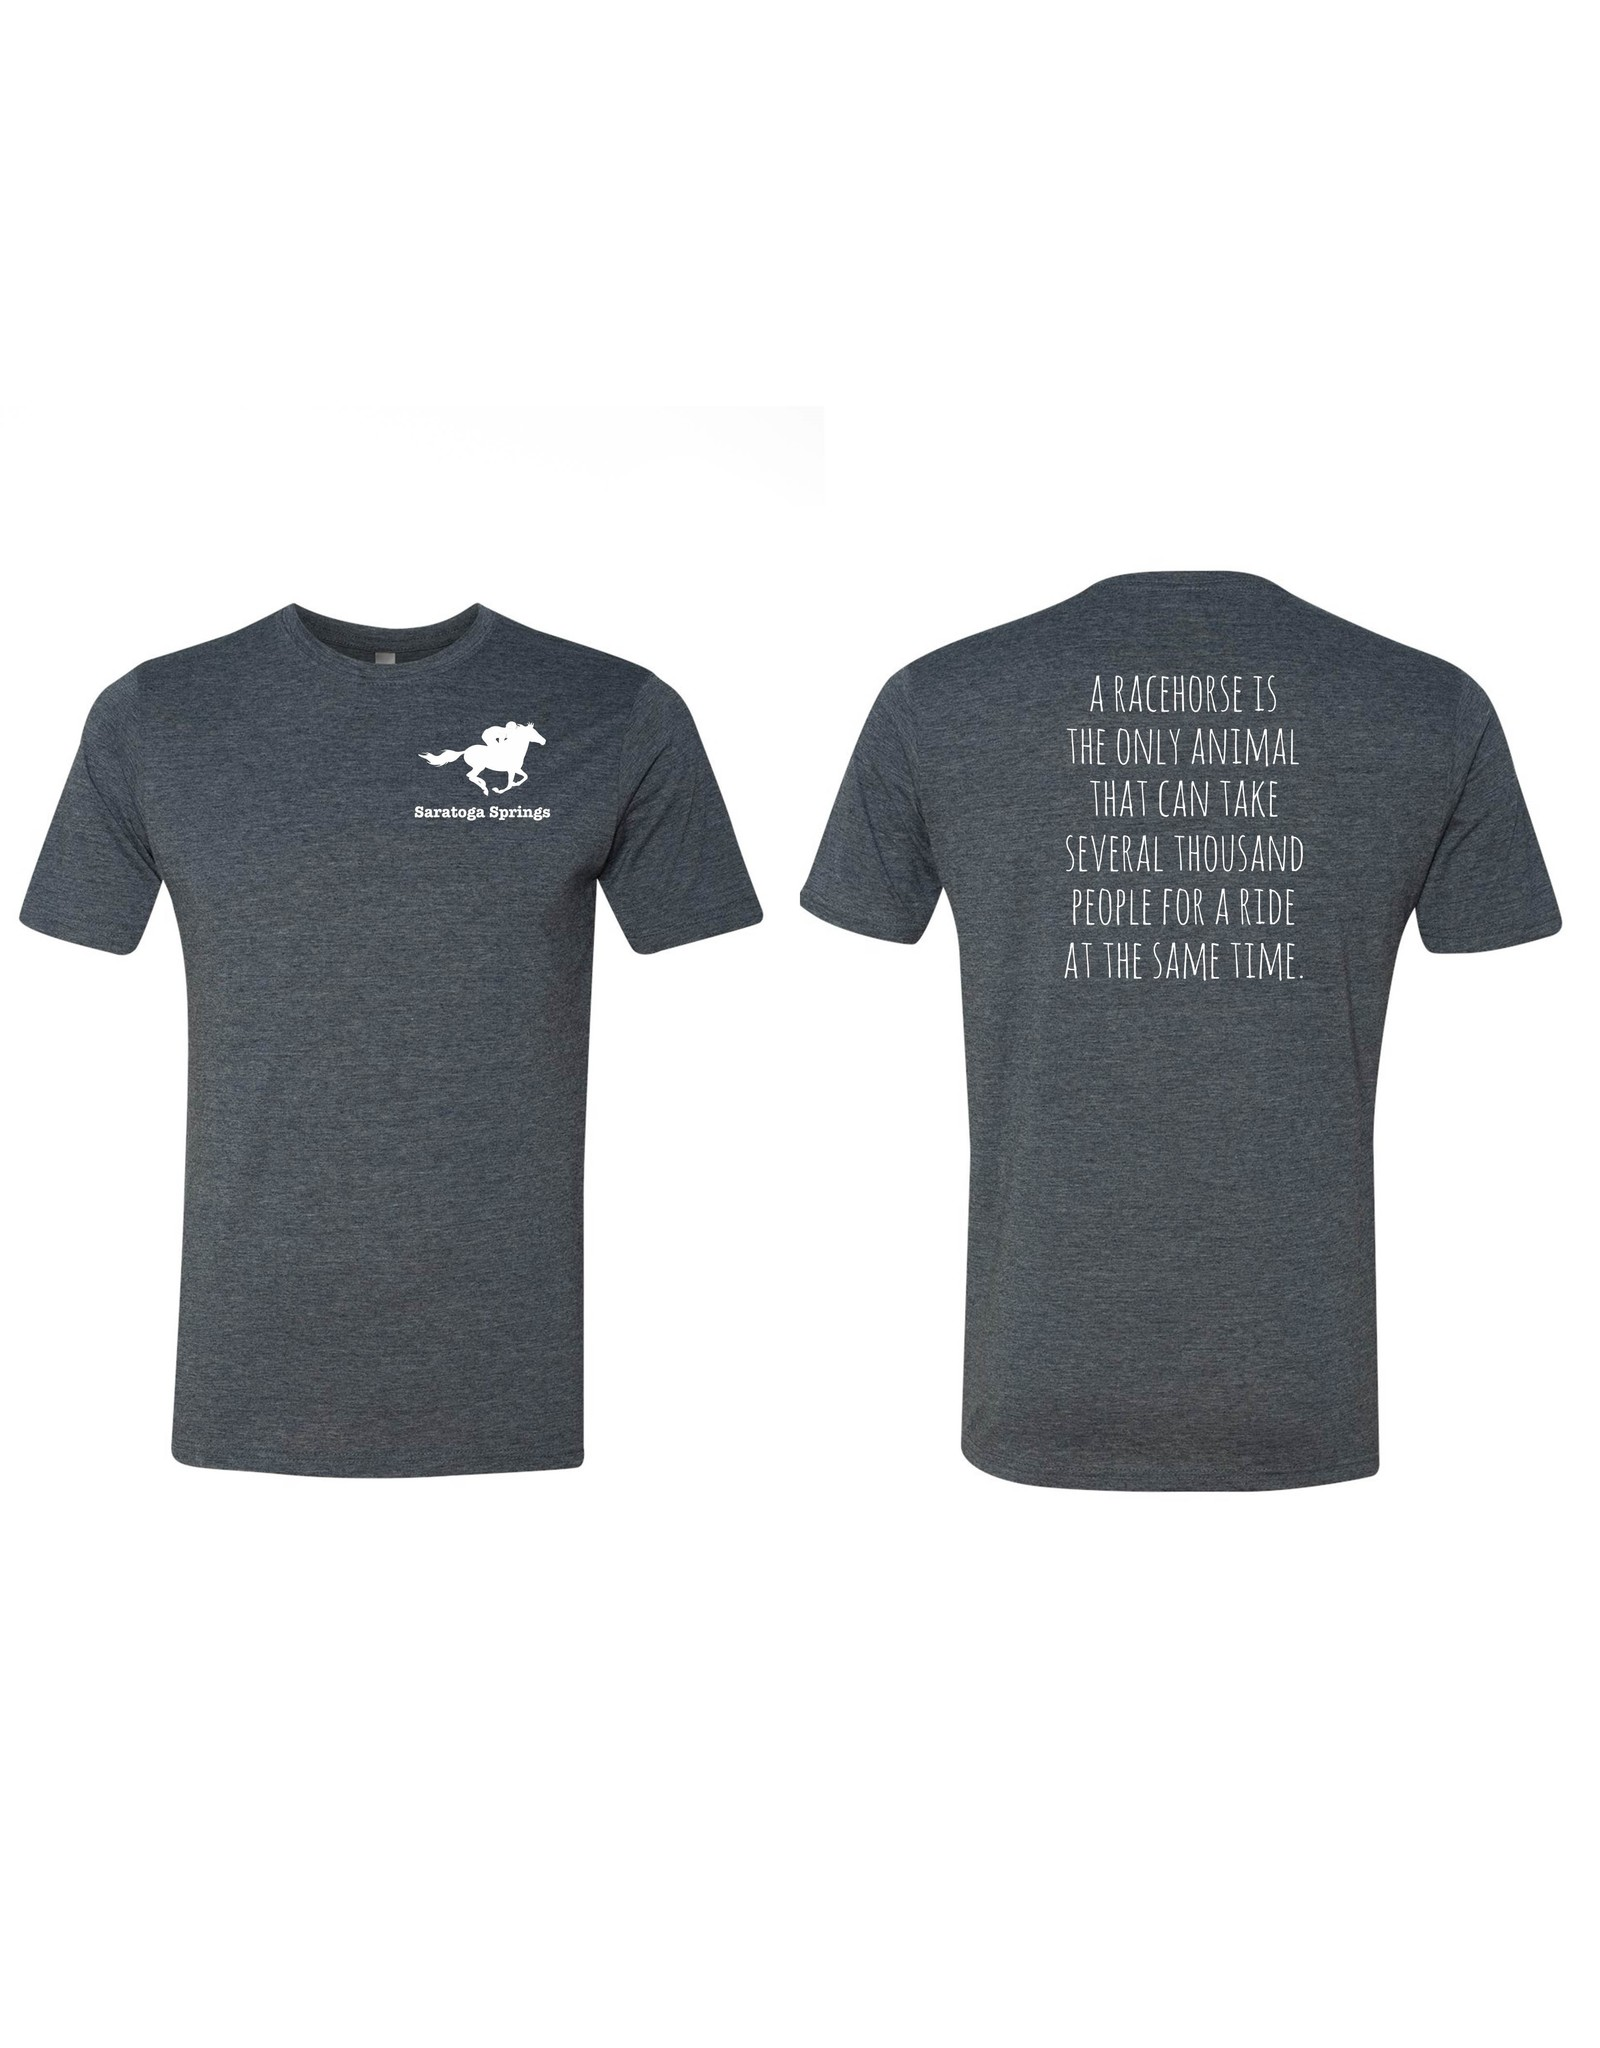 Tailgate and Party Original Tee Shirt - A Racehorse Is The Only Animal